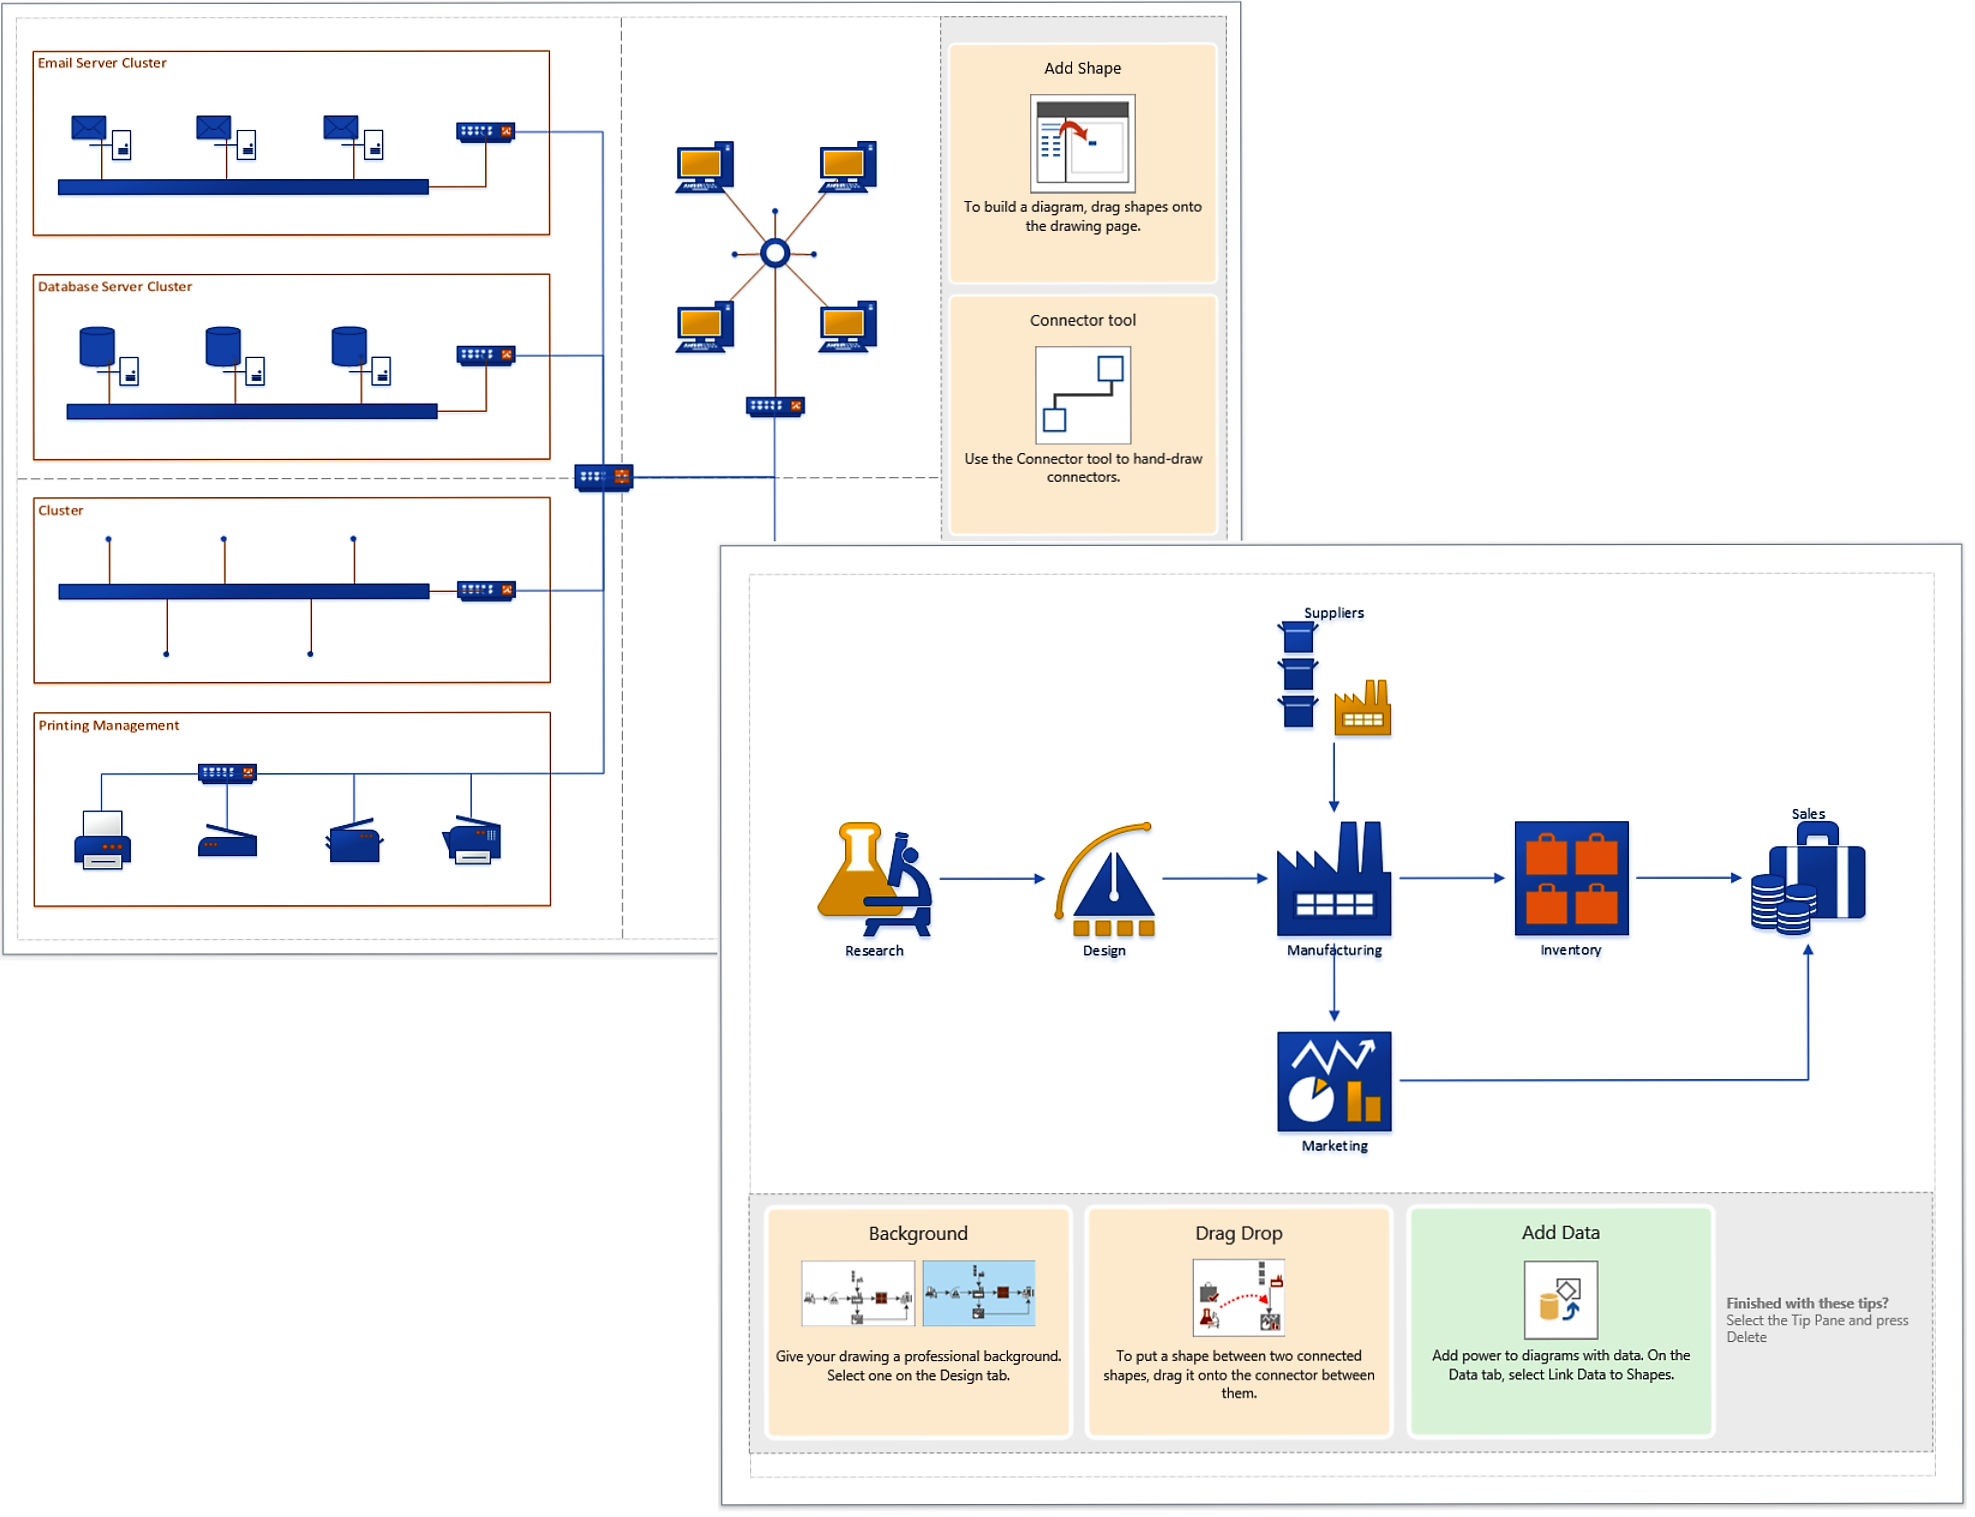 19 Automatic Visio 2013 Network Diagram Examples Download intended for Er Diagram Visio 2017